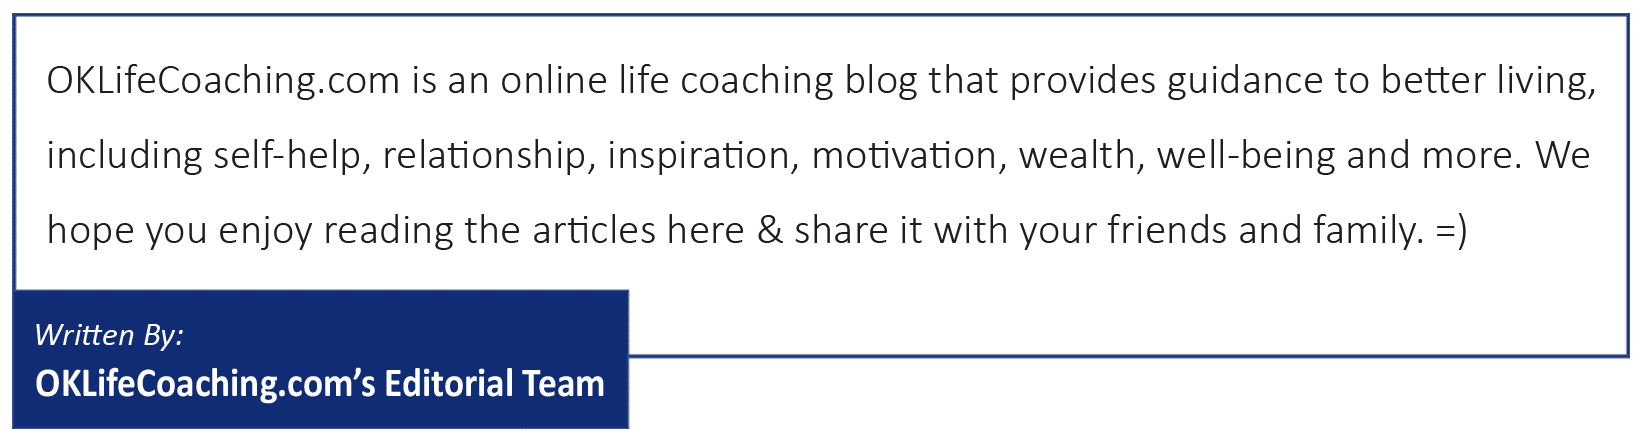 Written By: OKLifeCoaching's Editorial Team